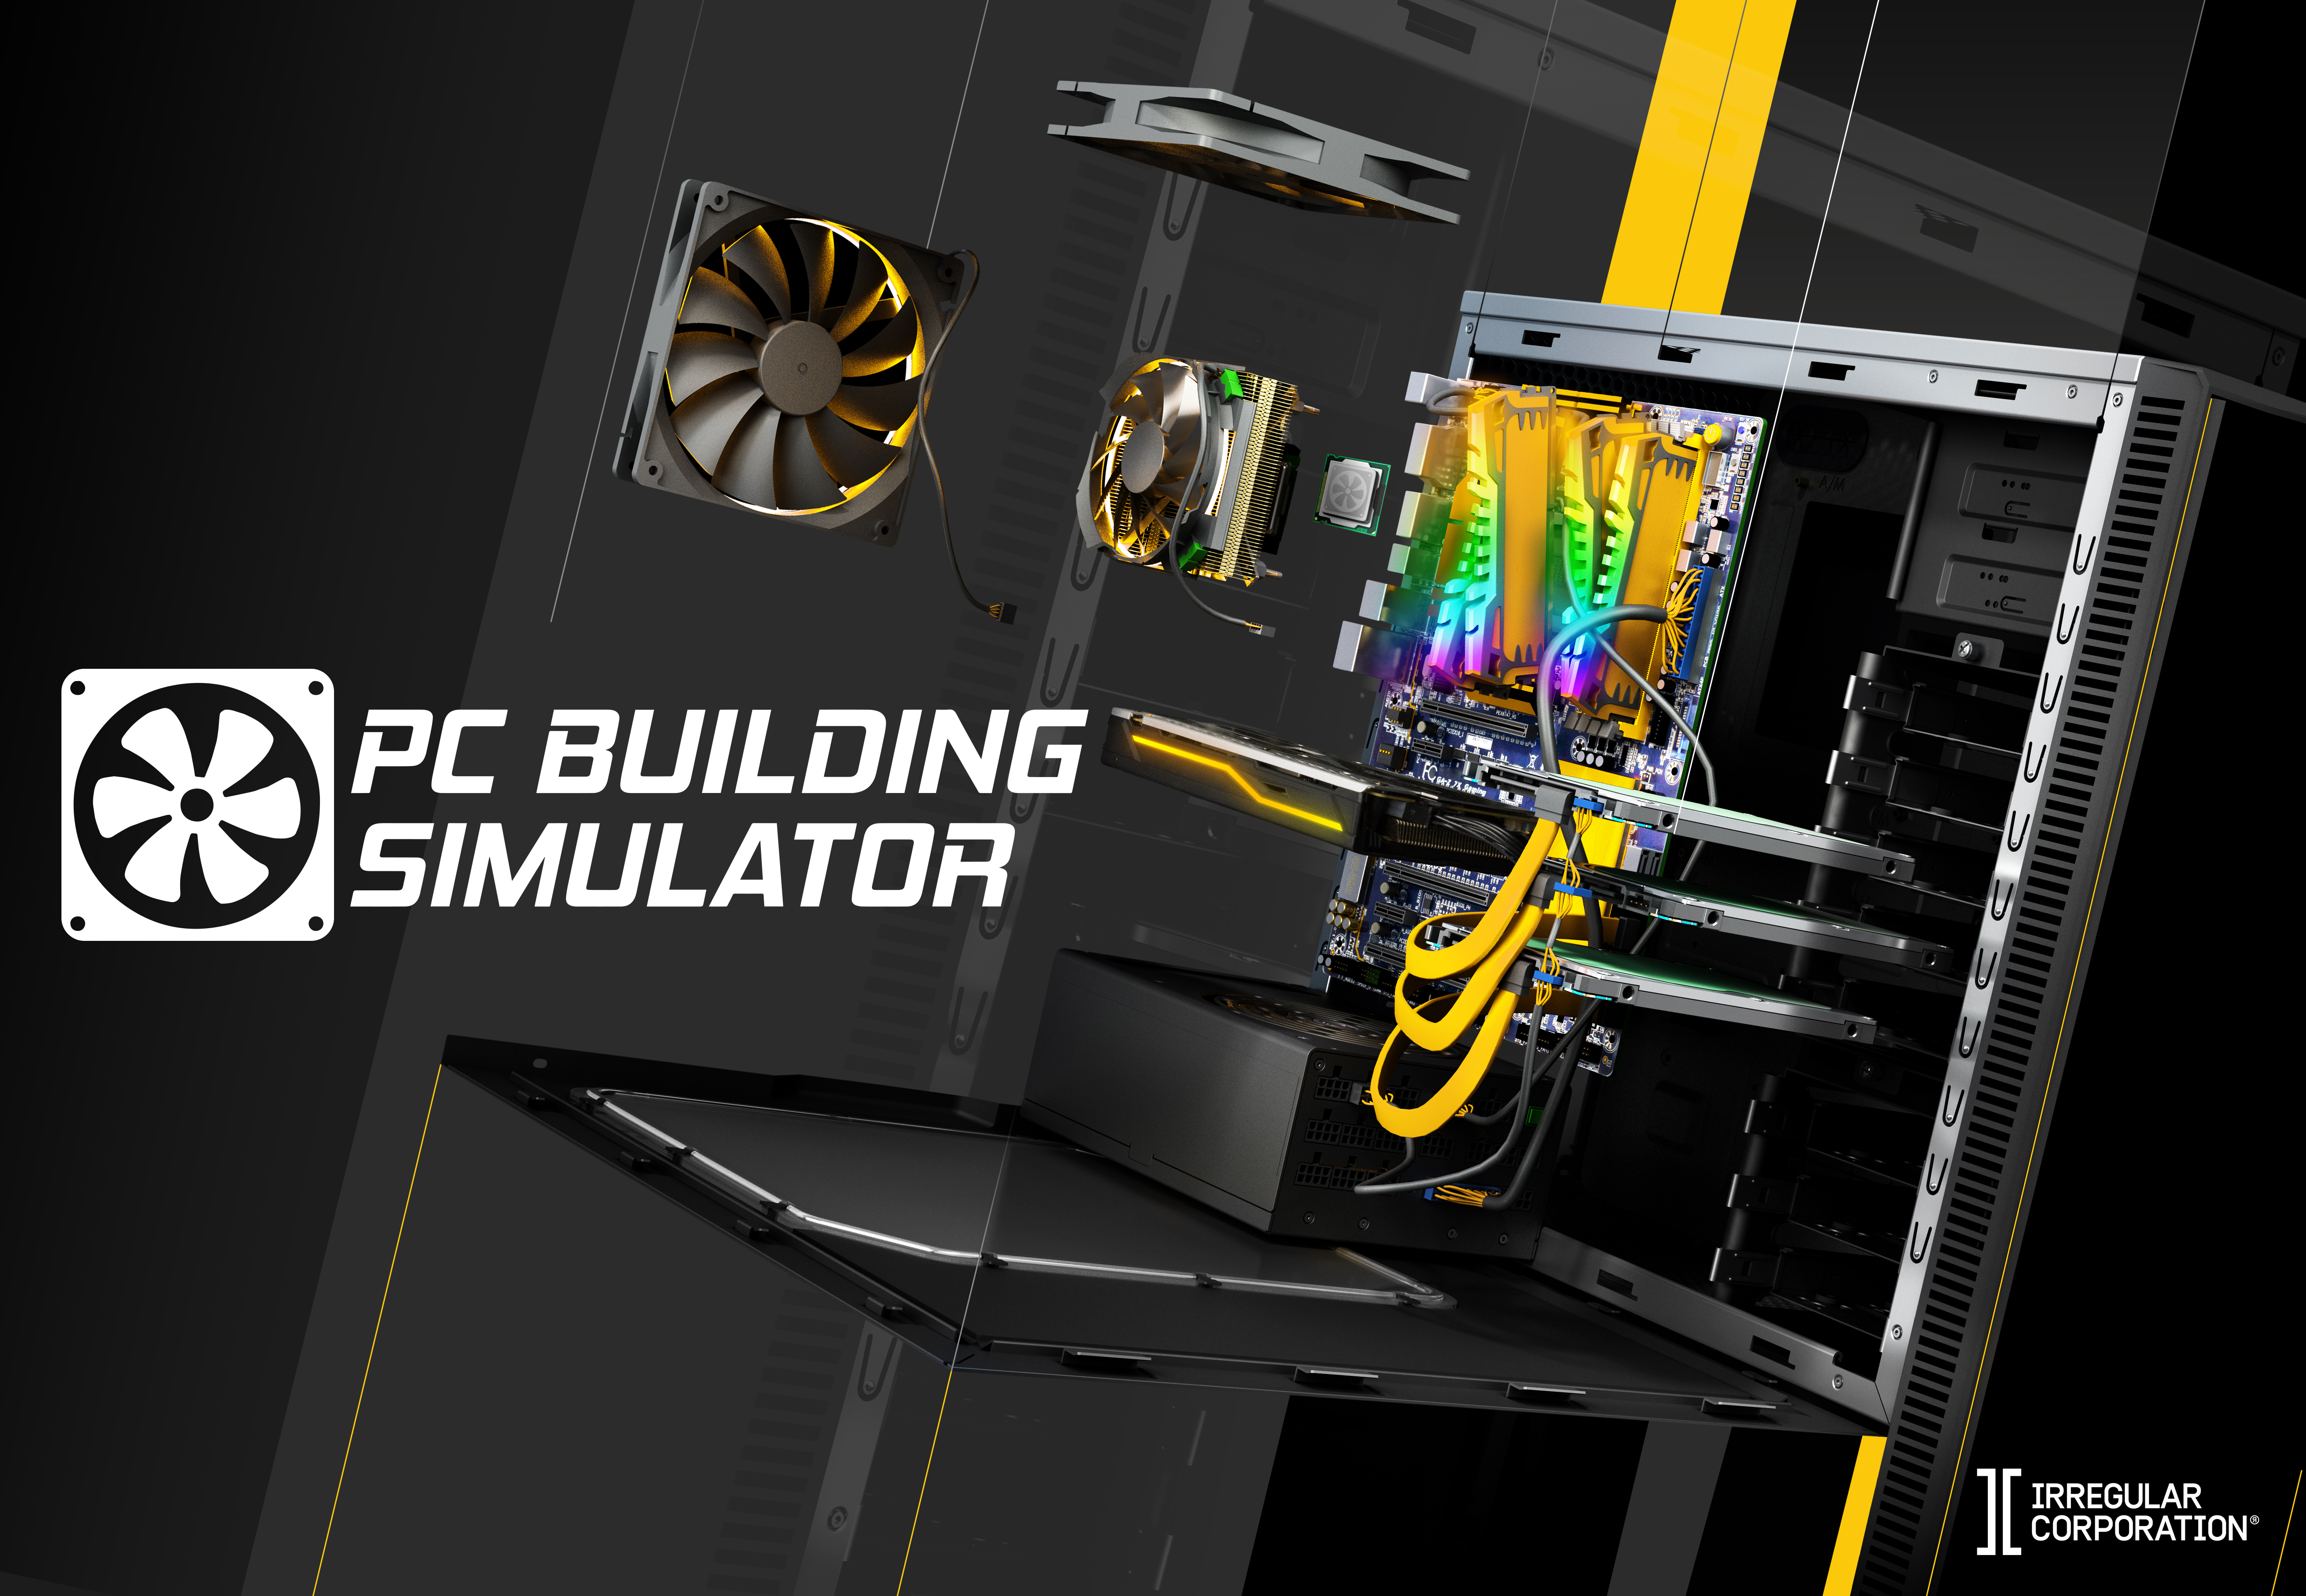 Pc Building Simulator Adds Geforce Rtx Gpus As It Leaves Early Access